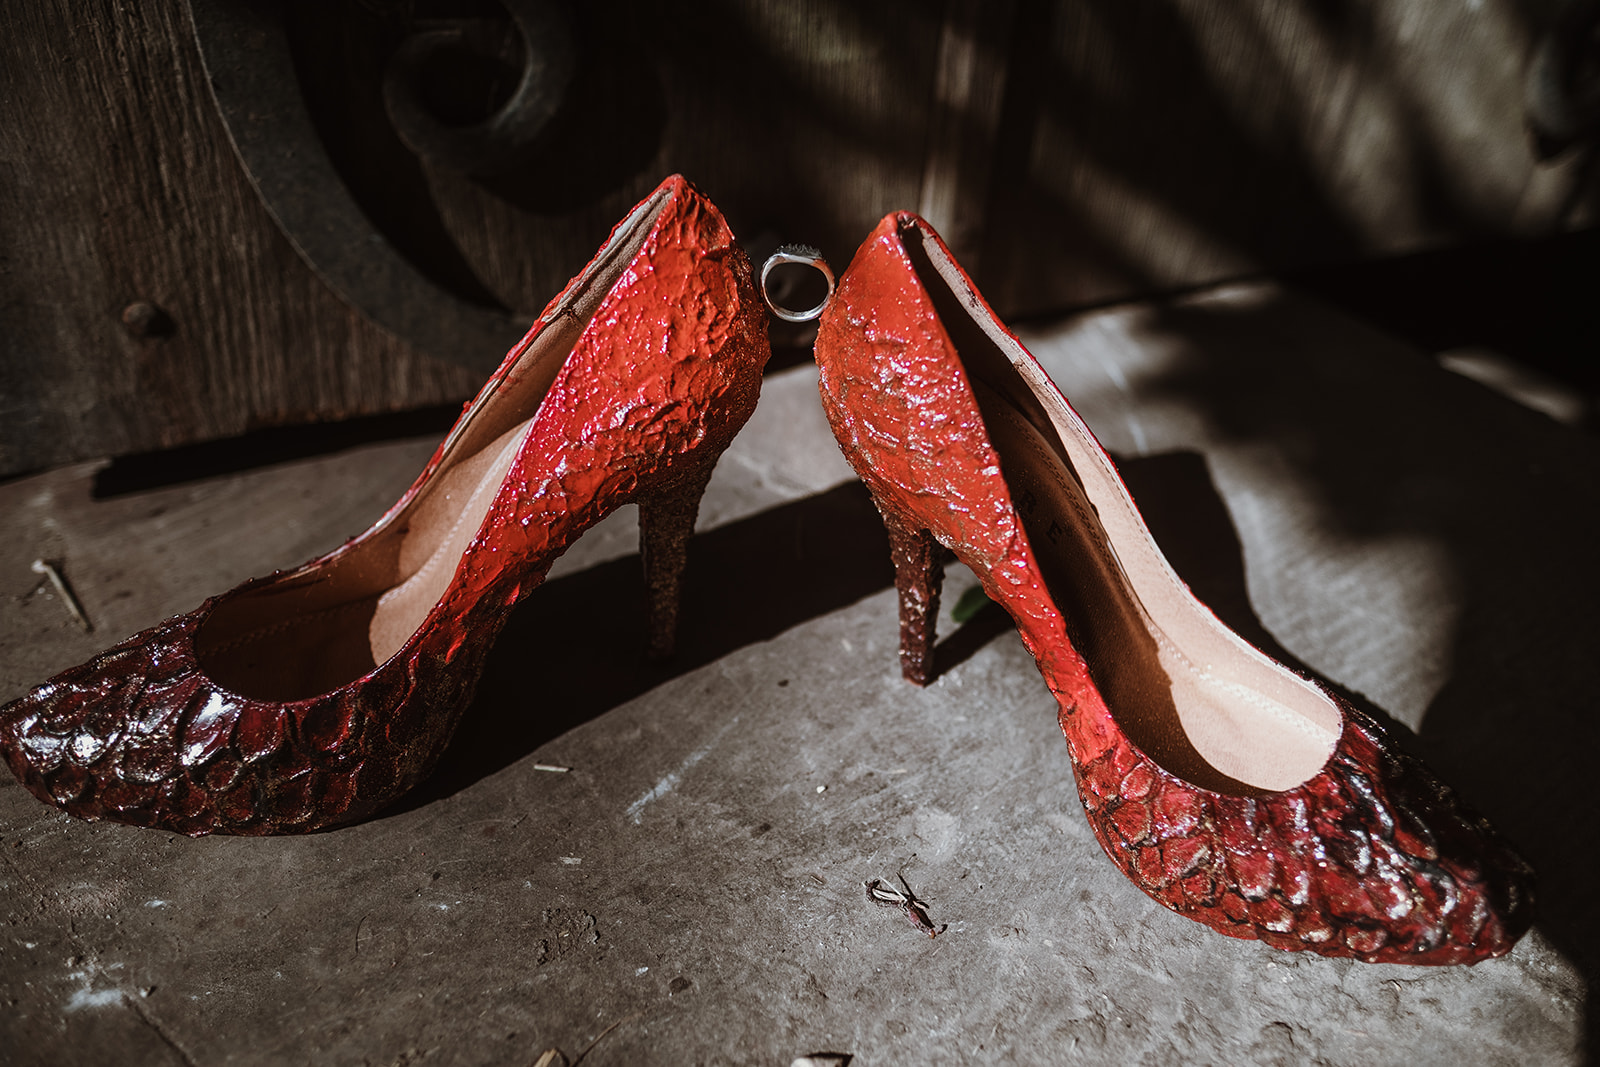 Game Of Thrones Wedding- Tom Jeavons Photography- Unconventional Wedding- Fantasy Wedding- Themed Wedding- red wedding shoes- unique wedding shoes